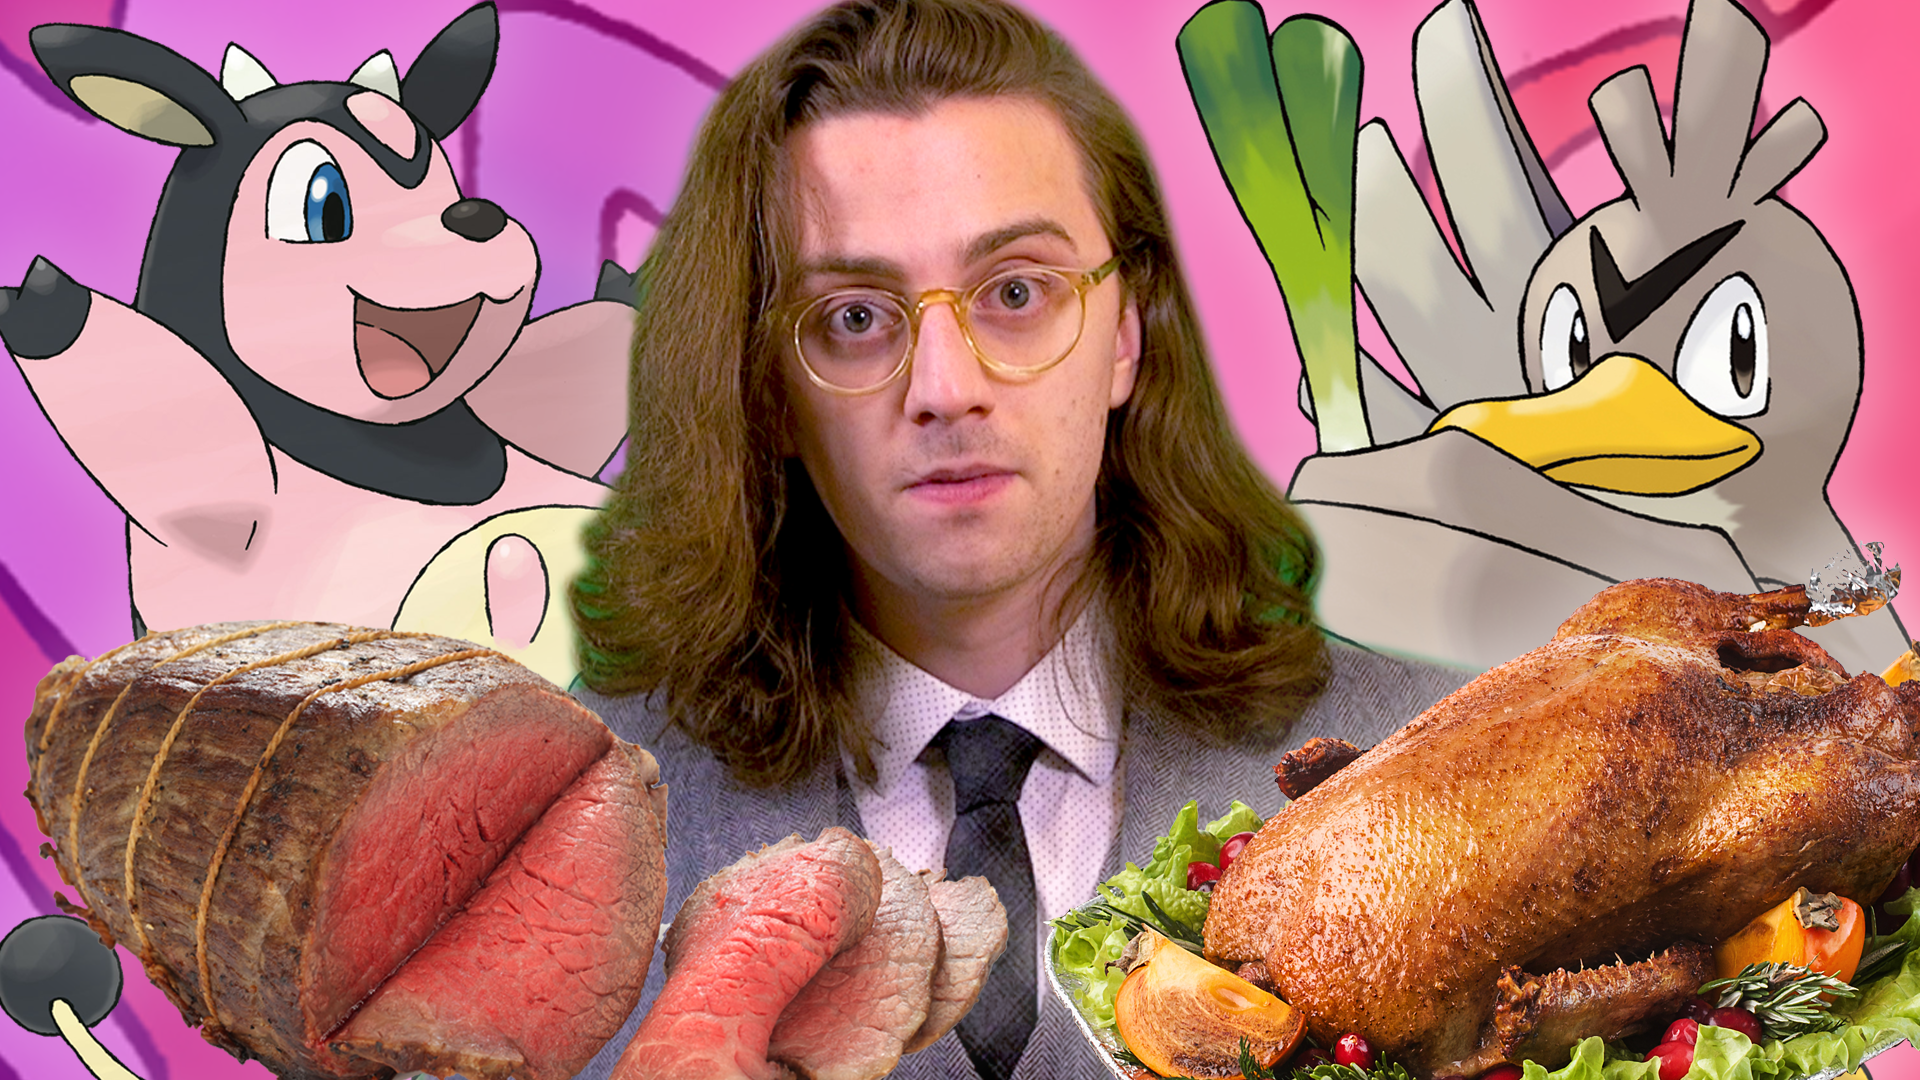 Brian David Gilbert looks dejectedly at the camera. He is surrounded by the Pokémon Miltank and Farfetch'd along with slab of roast beef and a roasted duck.